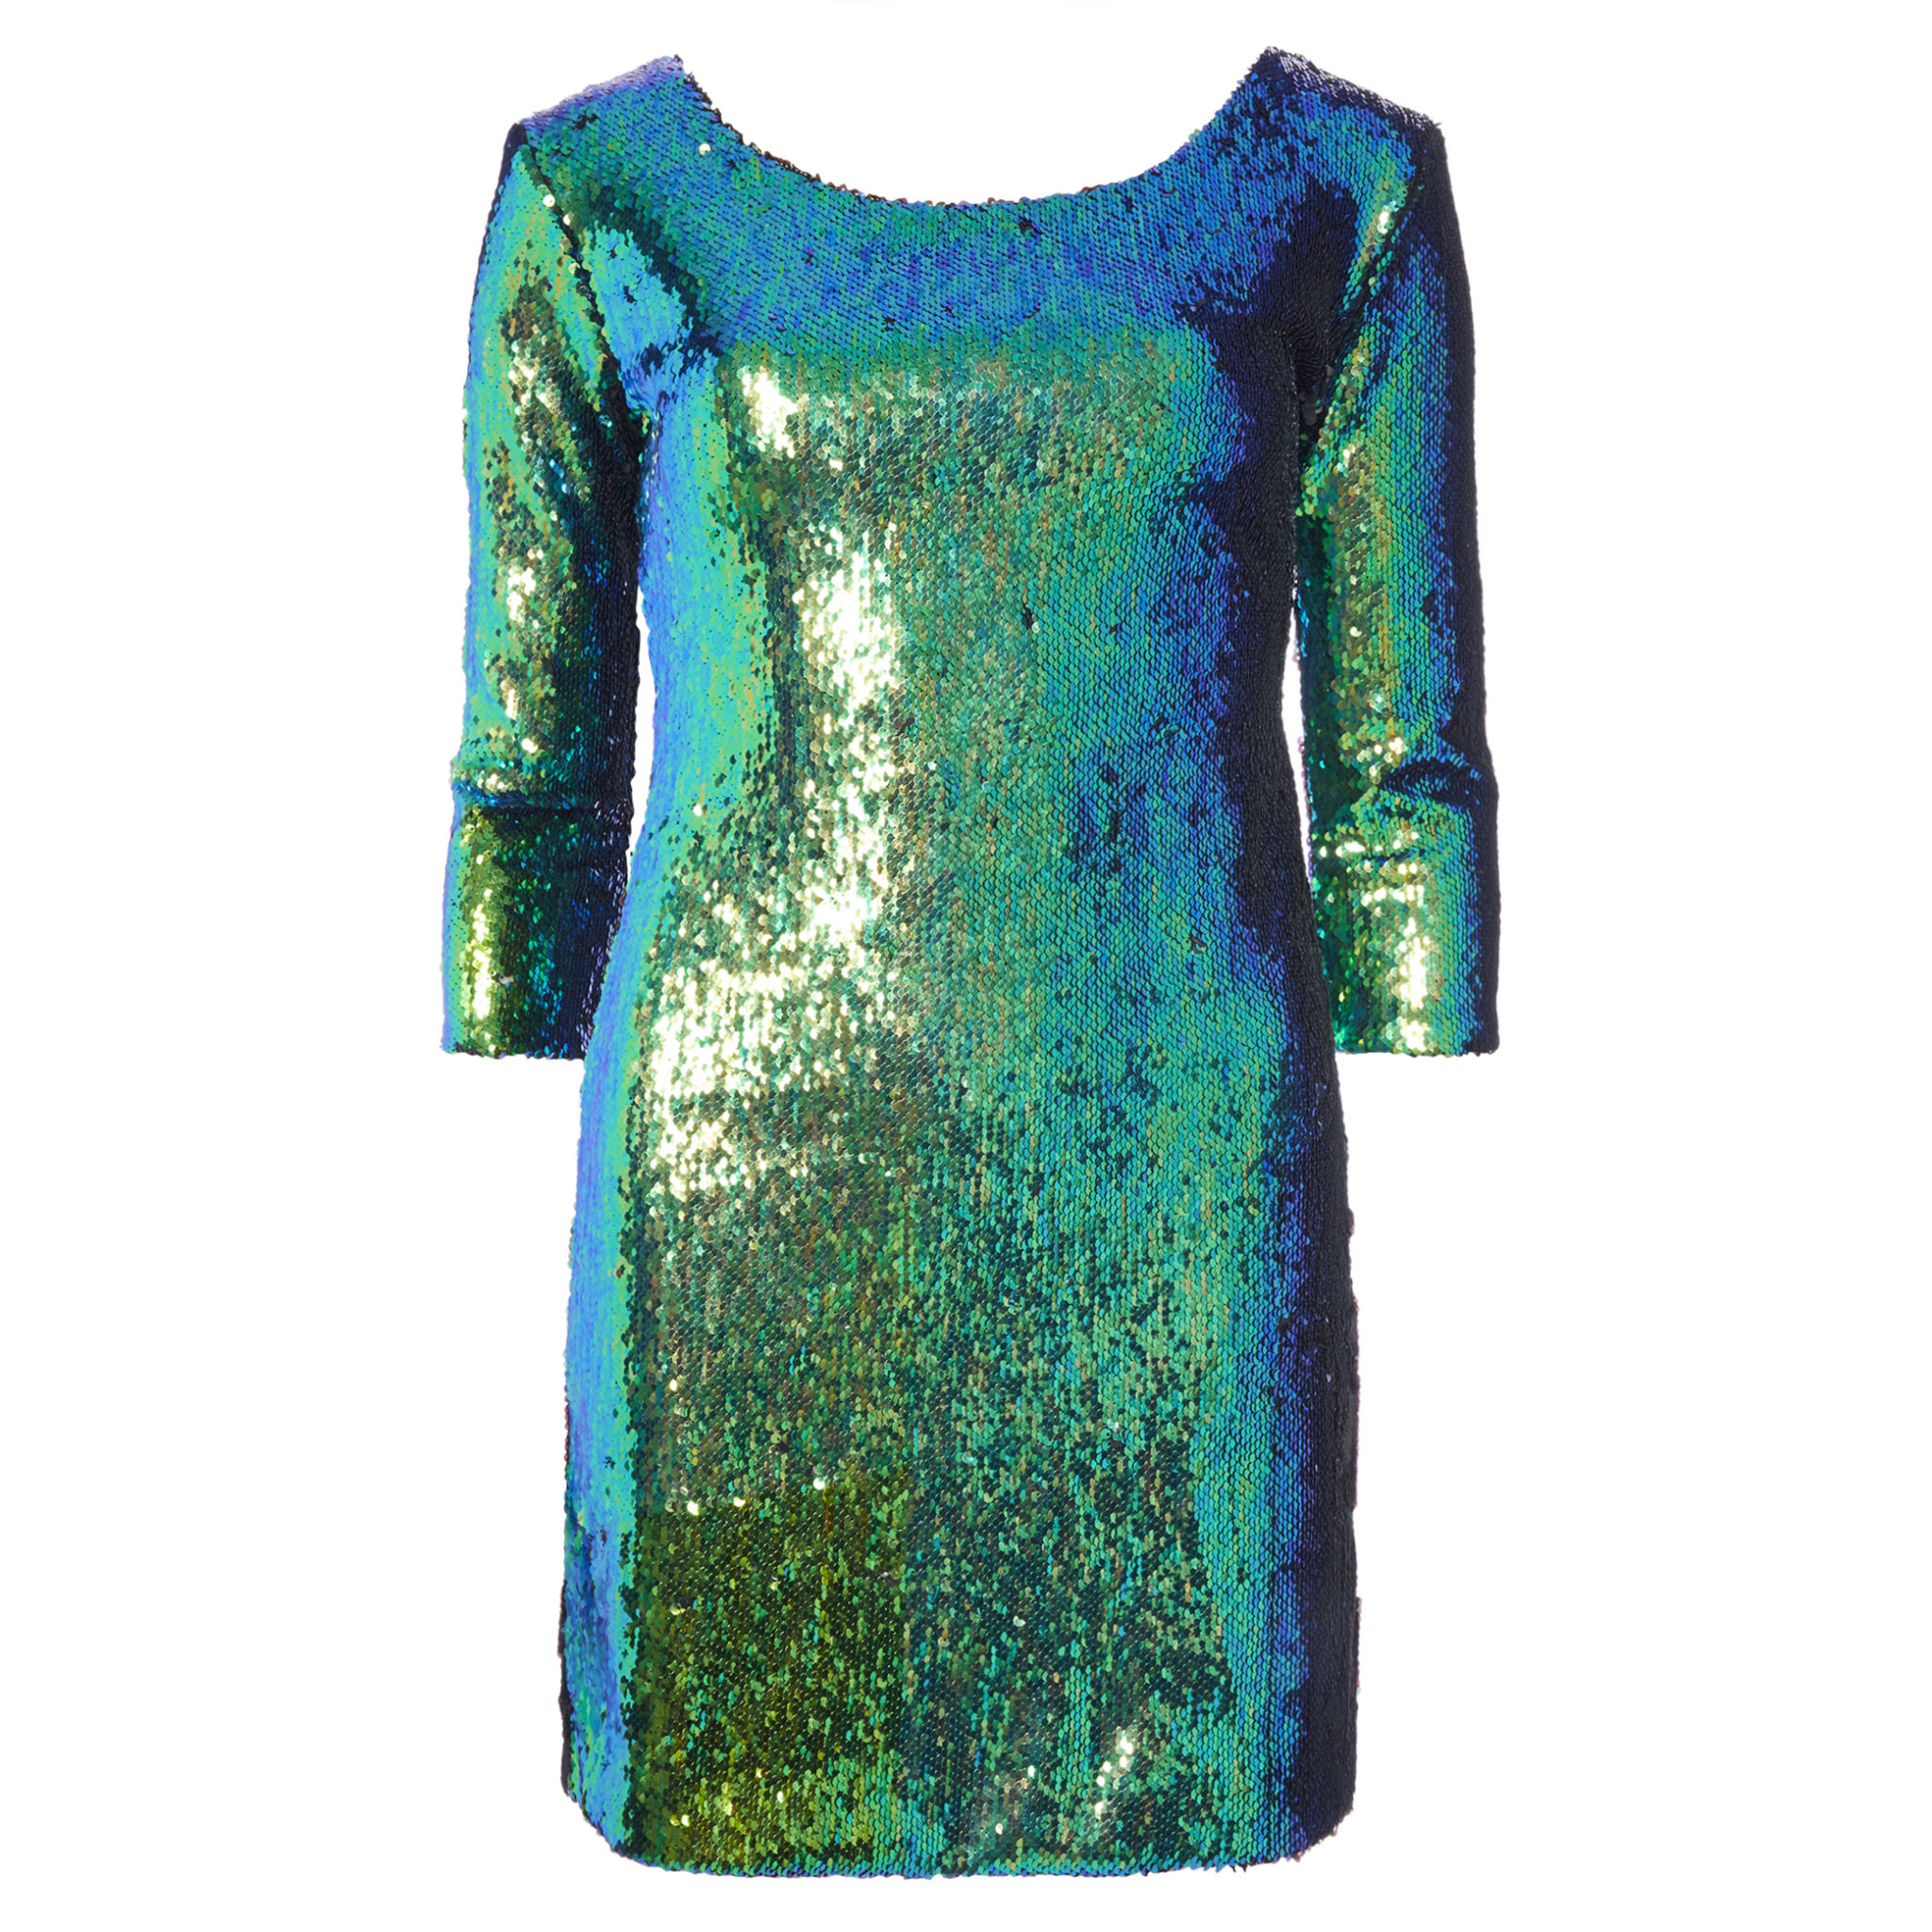 The best party dresses from primark for christmas 2014